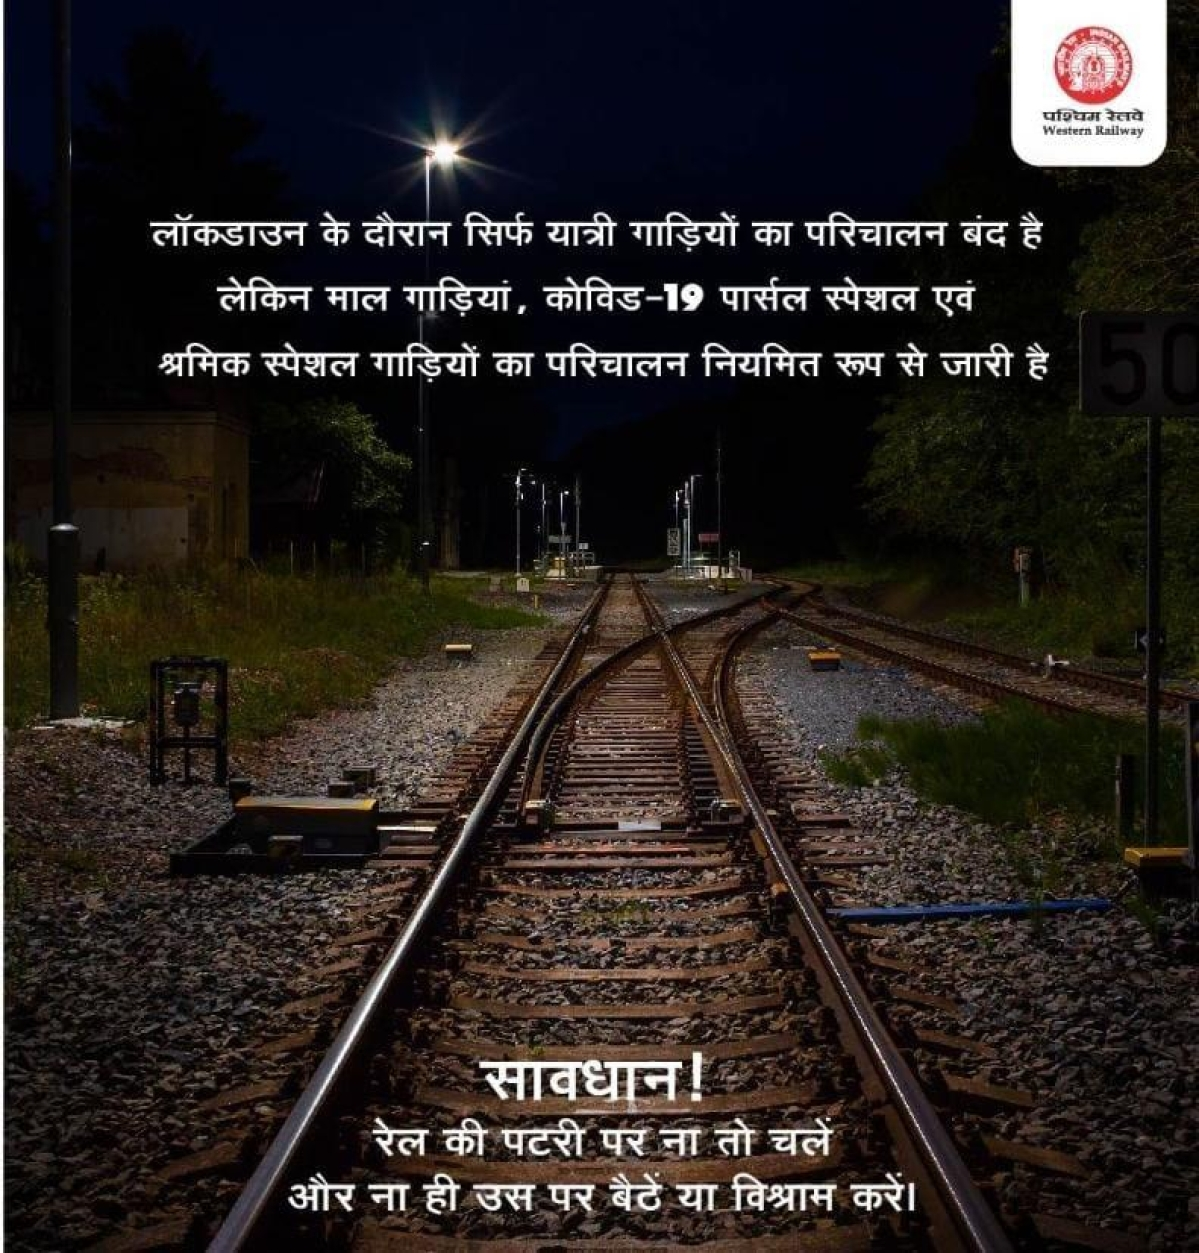 W.Rly appeals all stranded migrant labourers to maintain patience and avoid walking on railway tracks